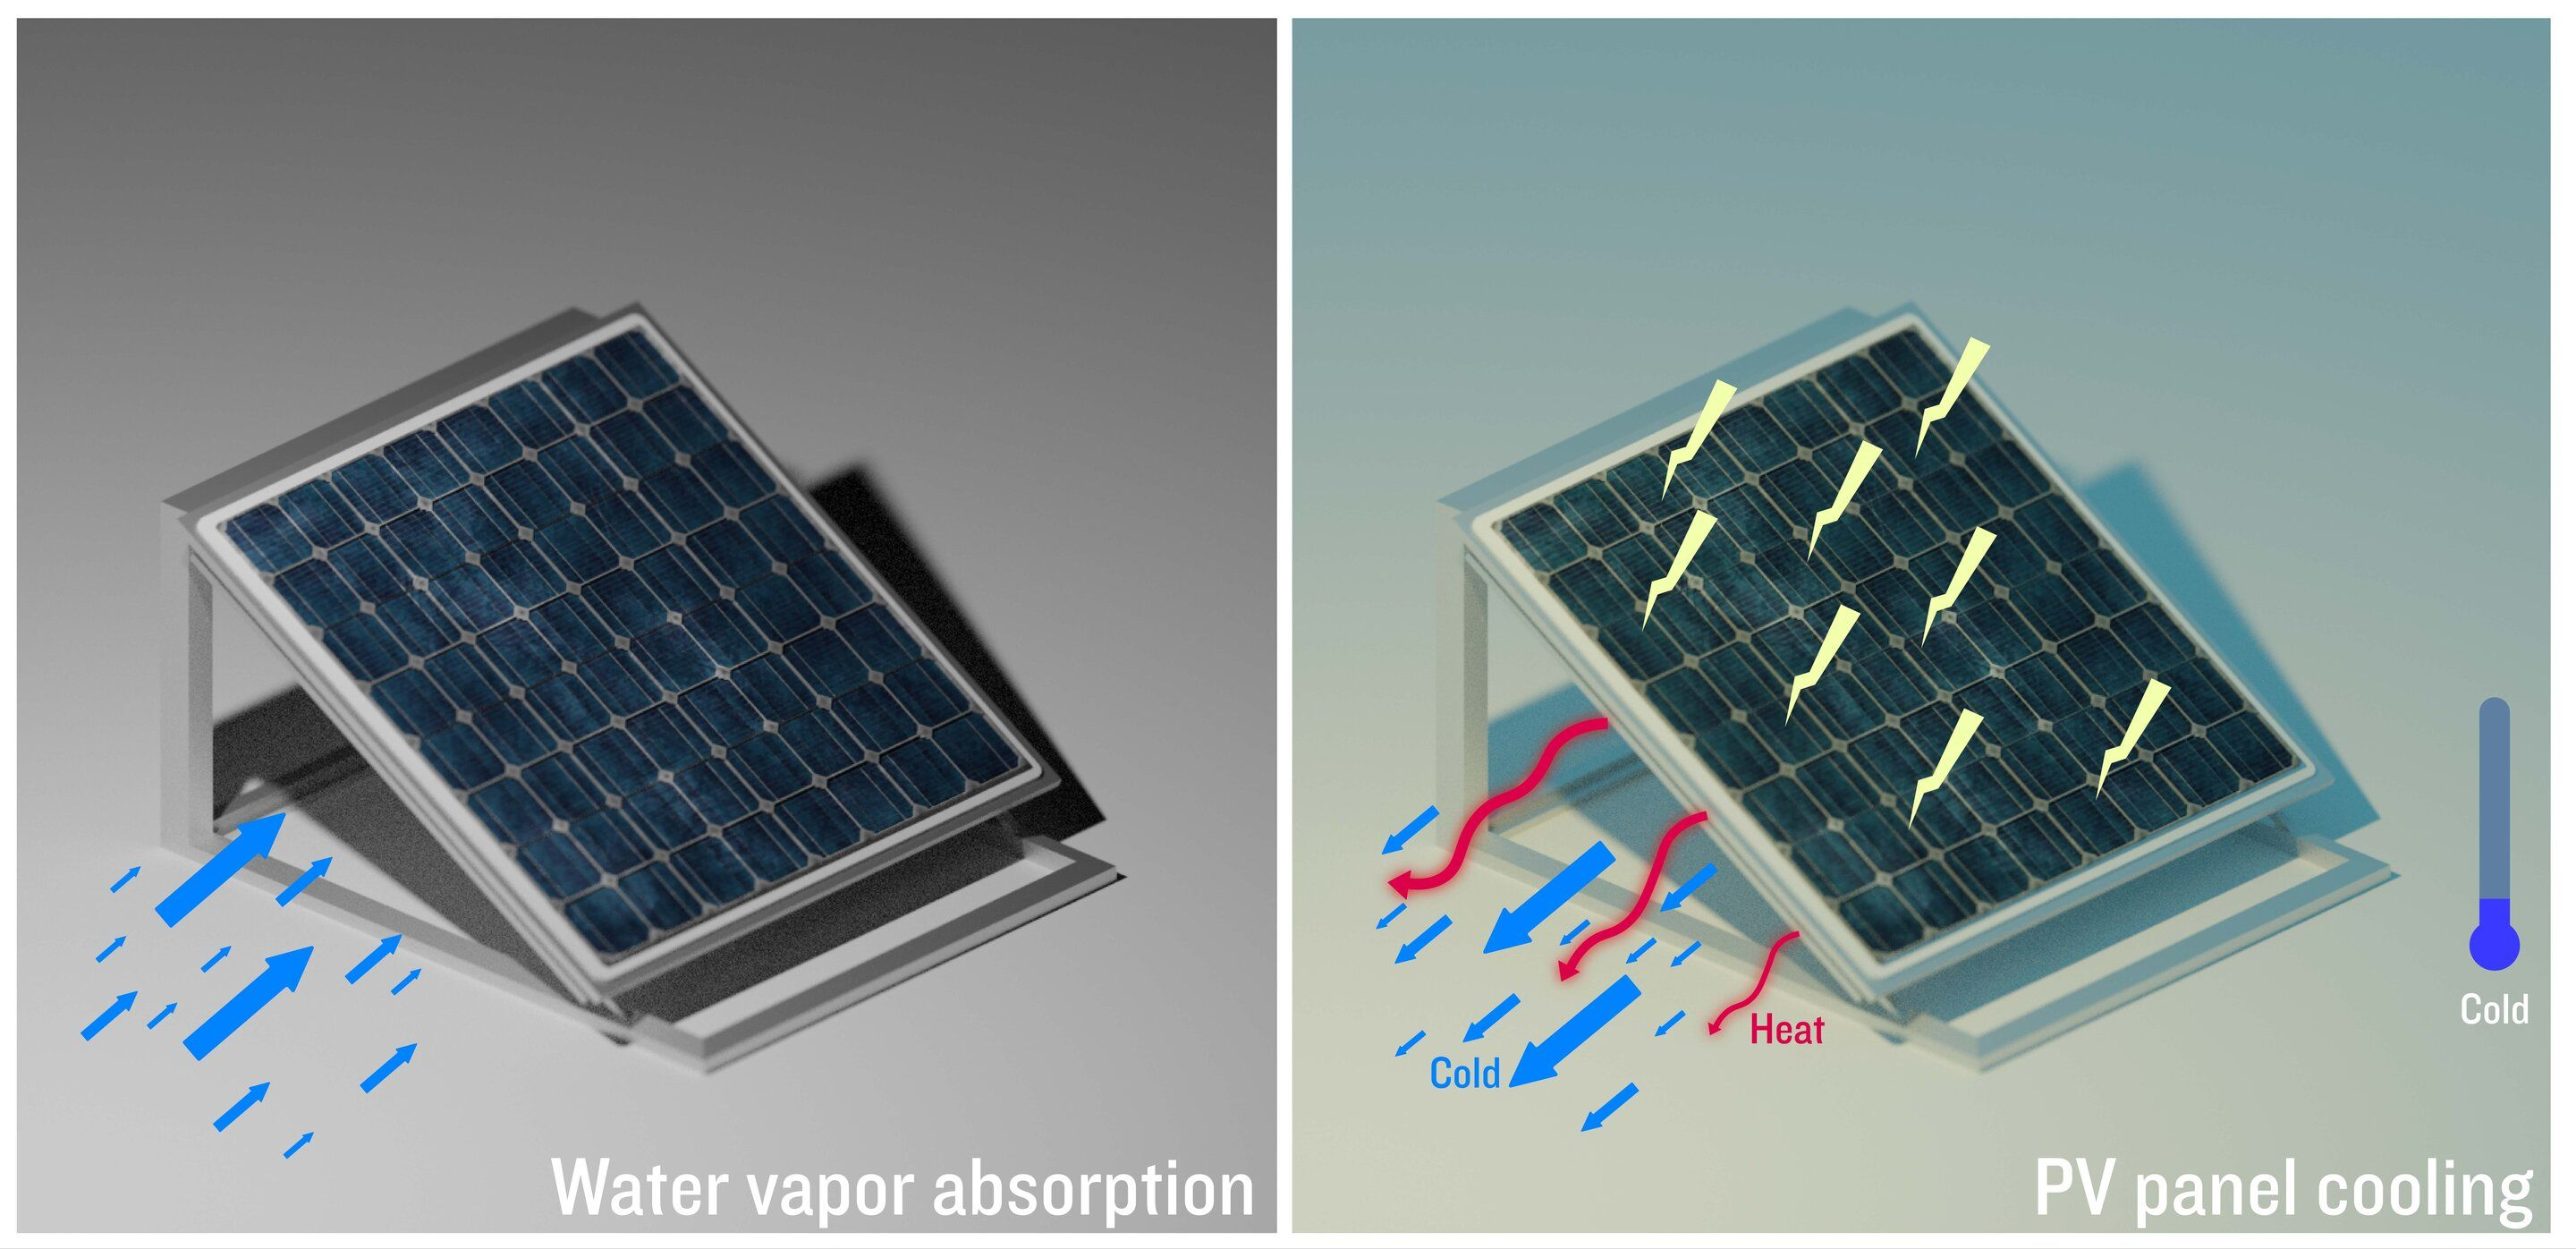 A Cooling System Developed At Kaust Has Improved The Efficiency Of A Prototype Solar Panel Up To 20 Percent And Re In 2020 Solar Panels Improve Energy Efficiency Solar